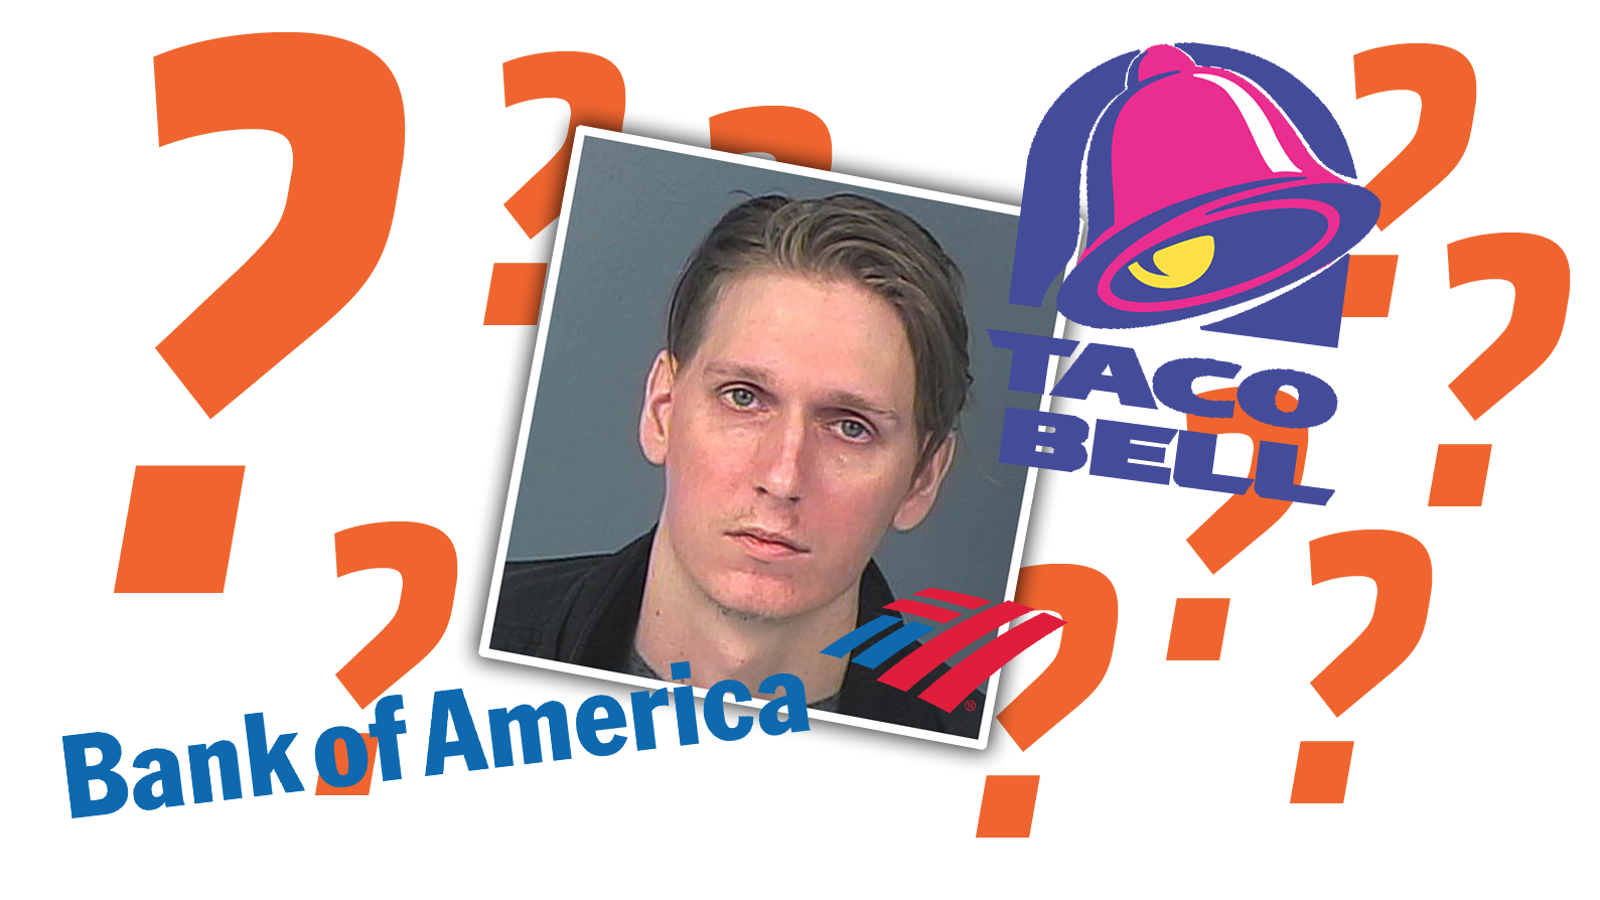 Hungry And Drunk Florida Man Arrested For DUI When He Mistook Bank For Taco Bell